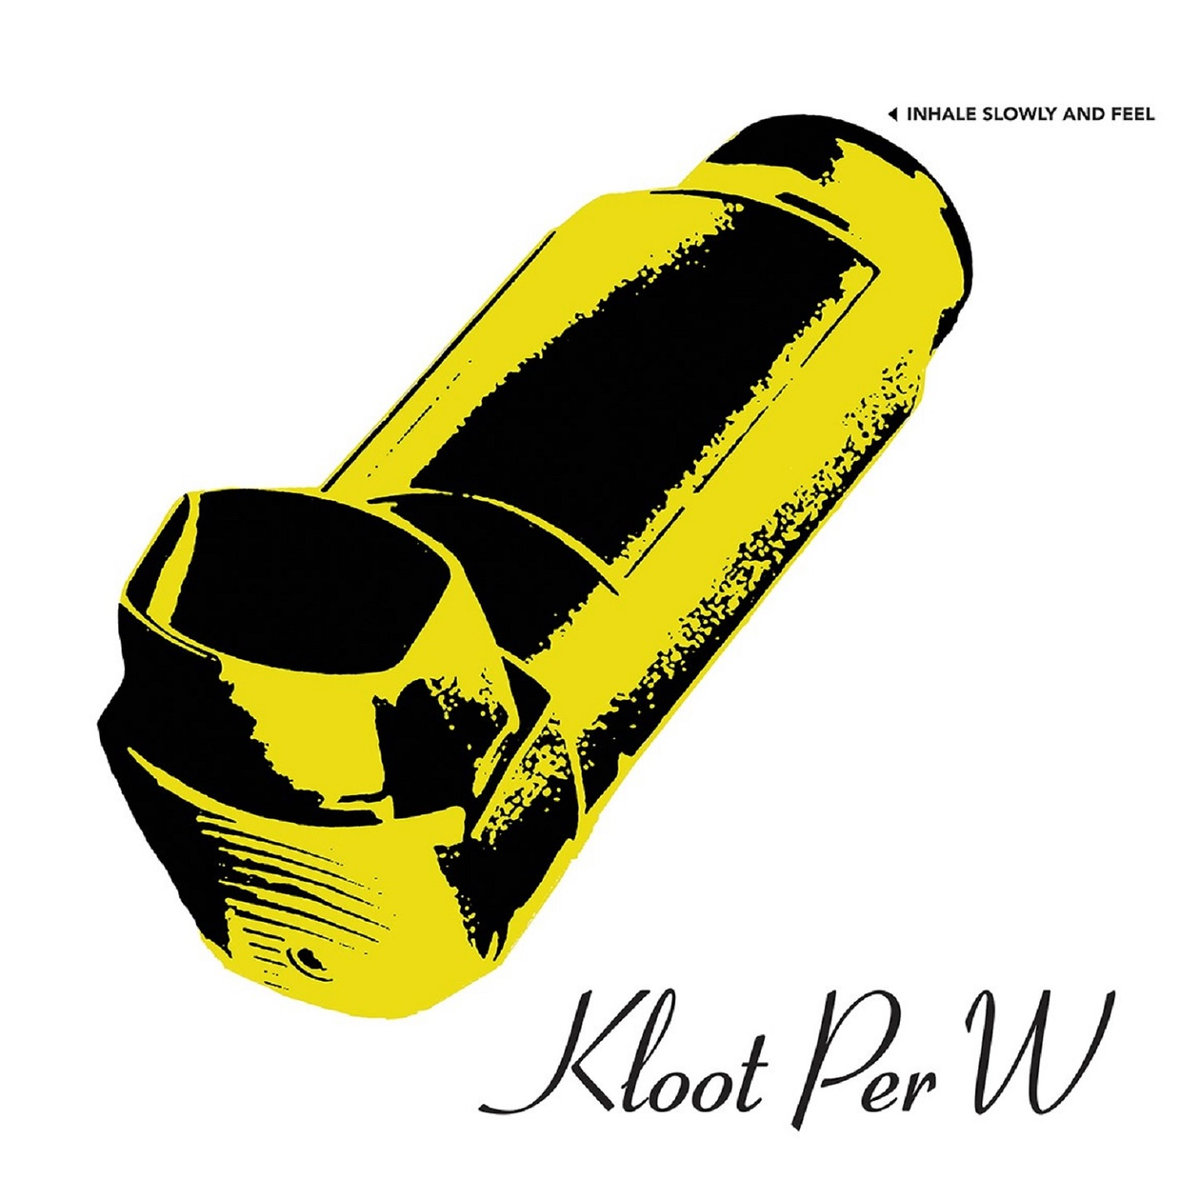 Kloot Per W - Inhale Slowly and Feel (Velvet Underground)